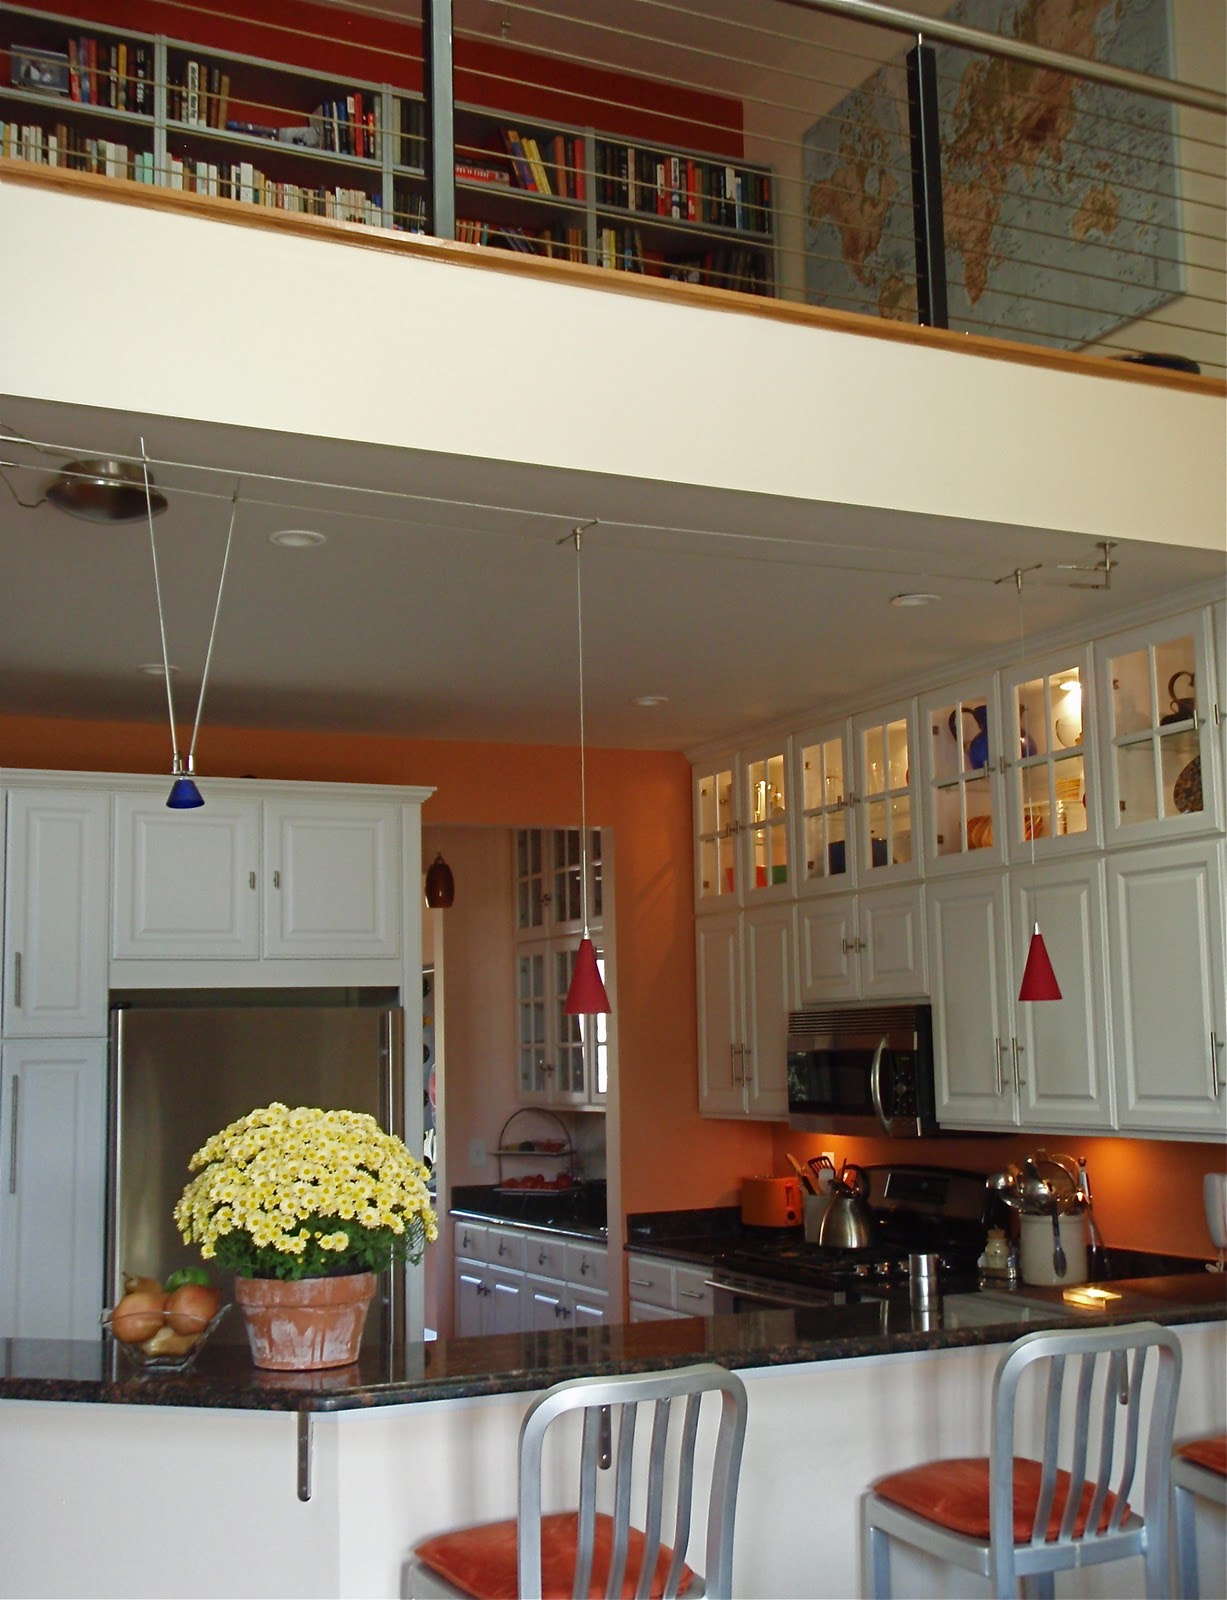 Directly above the kitchen is the loft. We love the cable railing